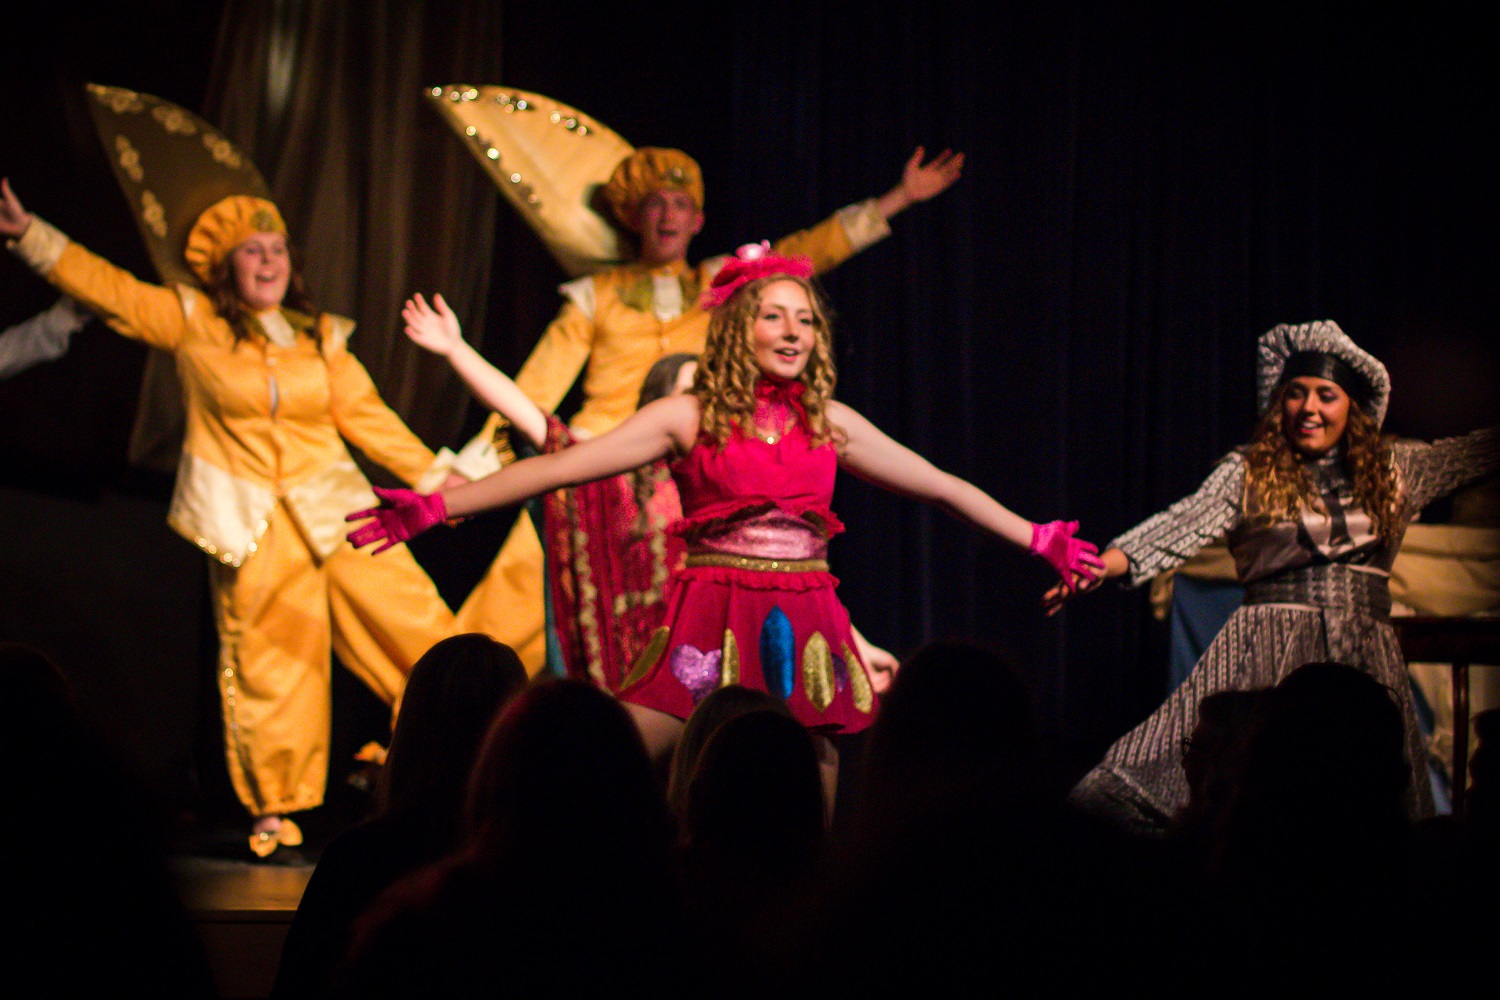 Beauty and the Beast - Katelyn Suderman and Malory Meiss - Yosemite High School Apr 26 2014 - photo by Virginia Lazar